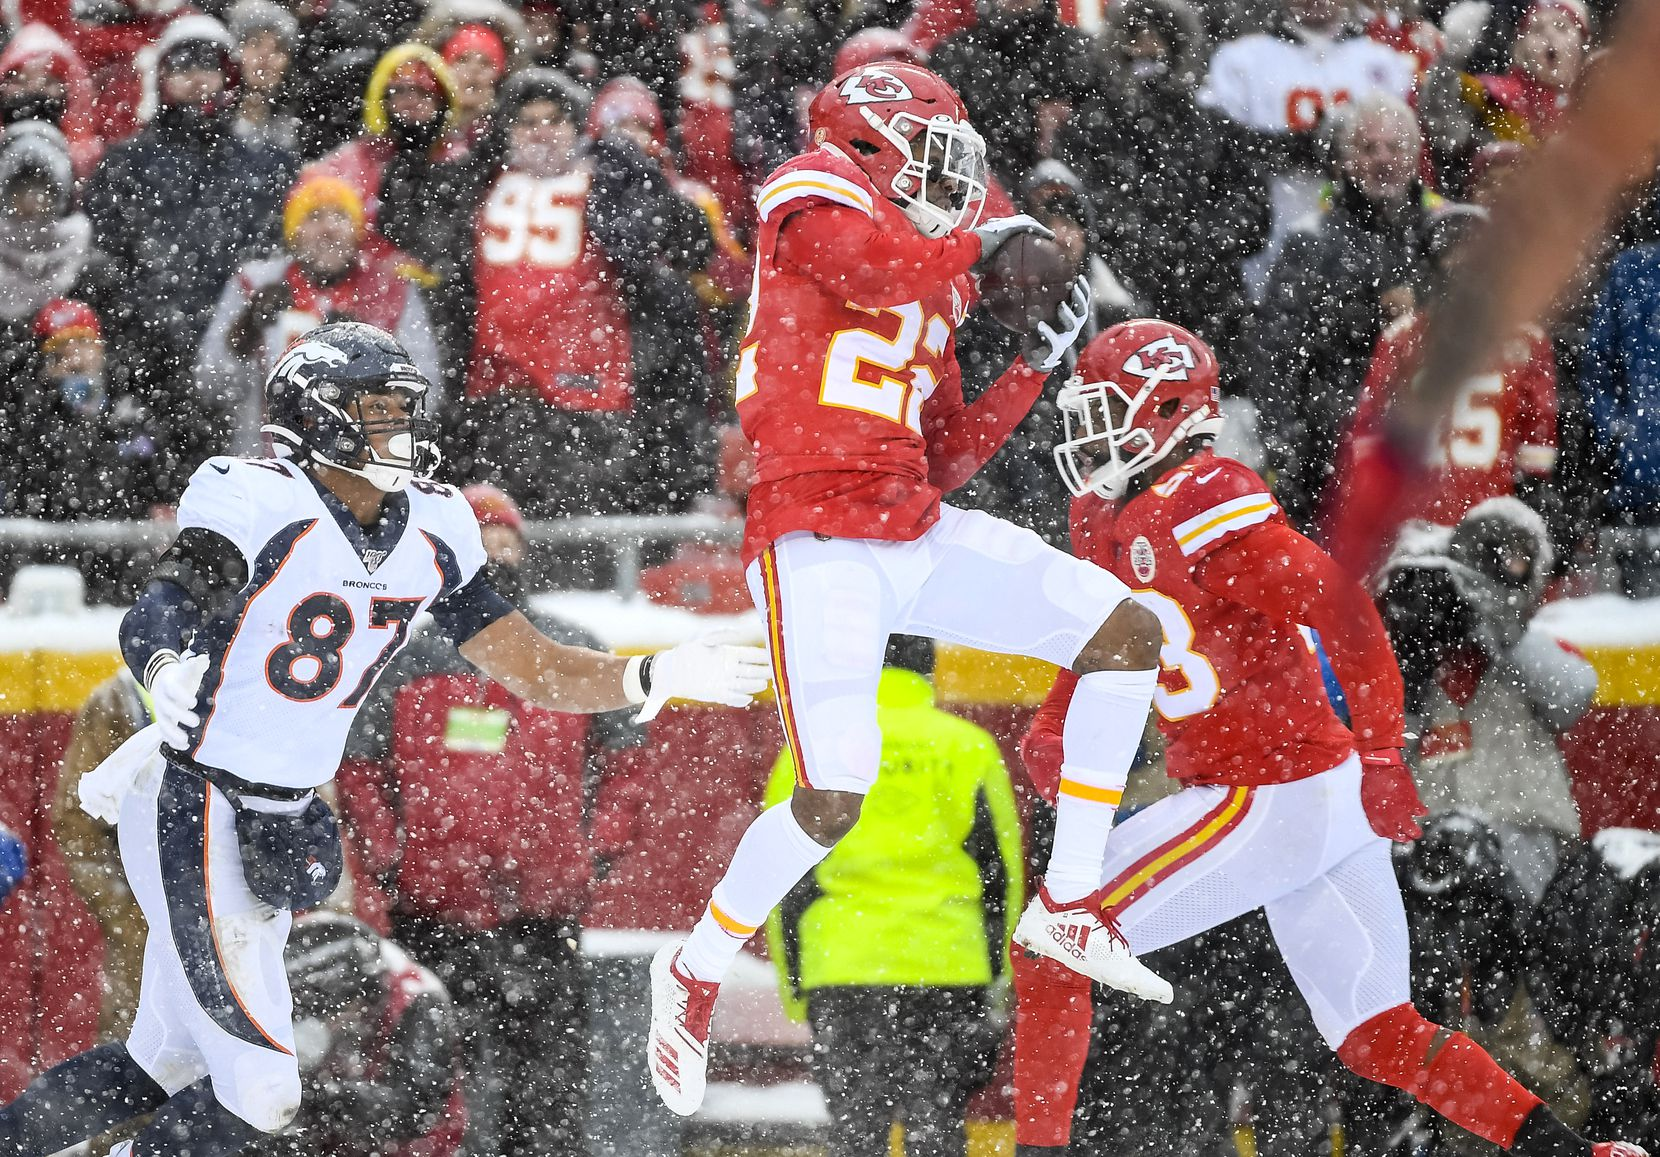 Chiefs free safety Juan Thornhill (22) intercepts a ball intended for Broncos tight end Noah Fant (87) during the second half of a game in Kansas City, Mo., on Sunday, Dec. 15, 2019. (AP Photo/Reed Hoffmann)